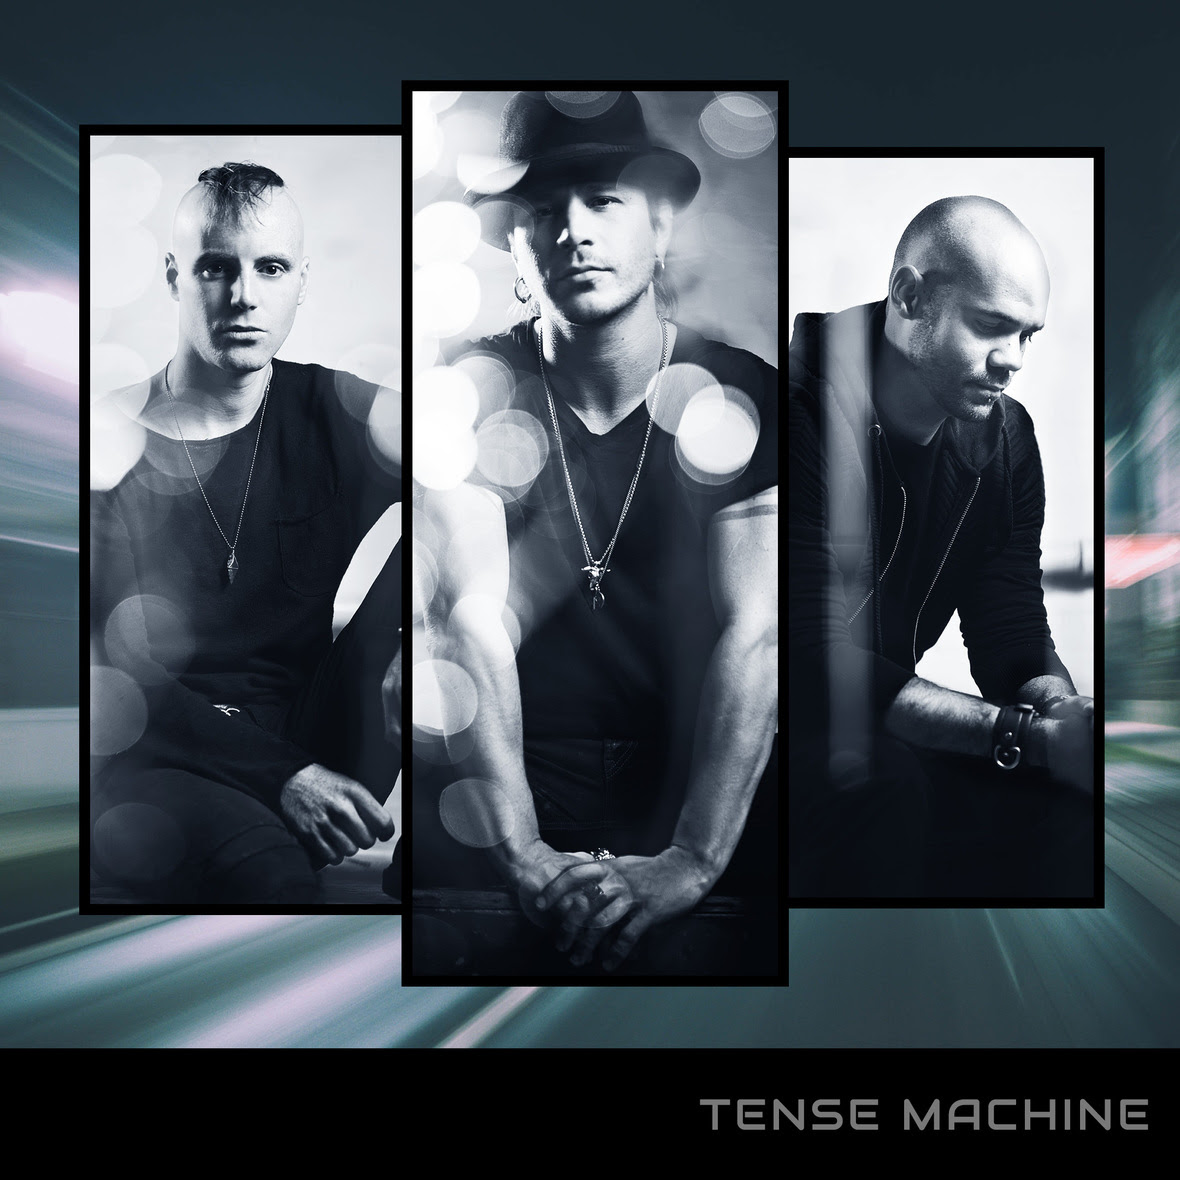 TenseMachine---Group-Photo-Comp---060719 02- 2160X2160